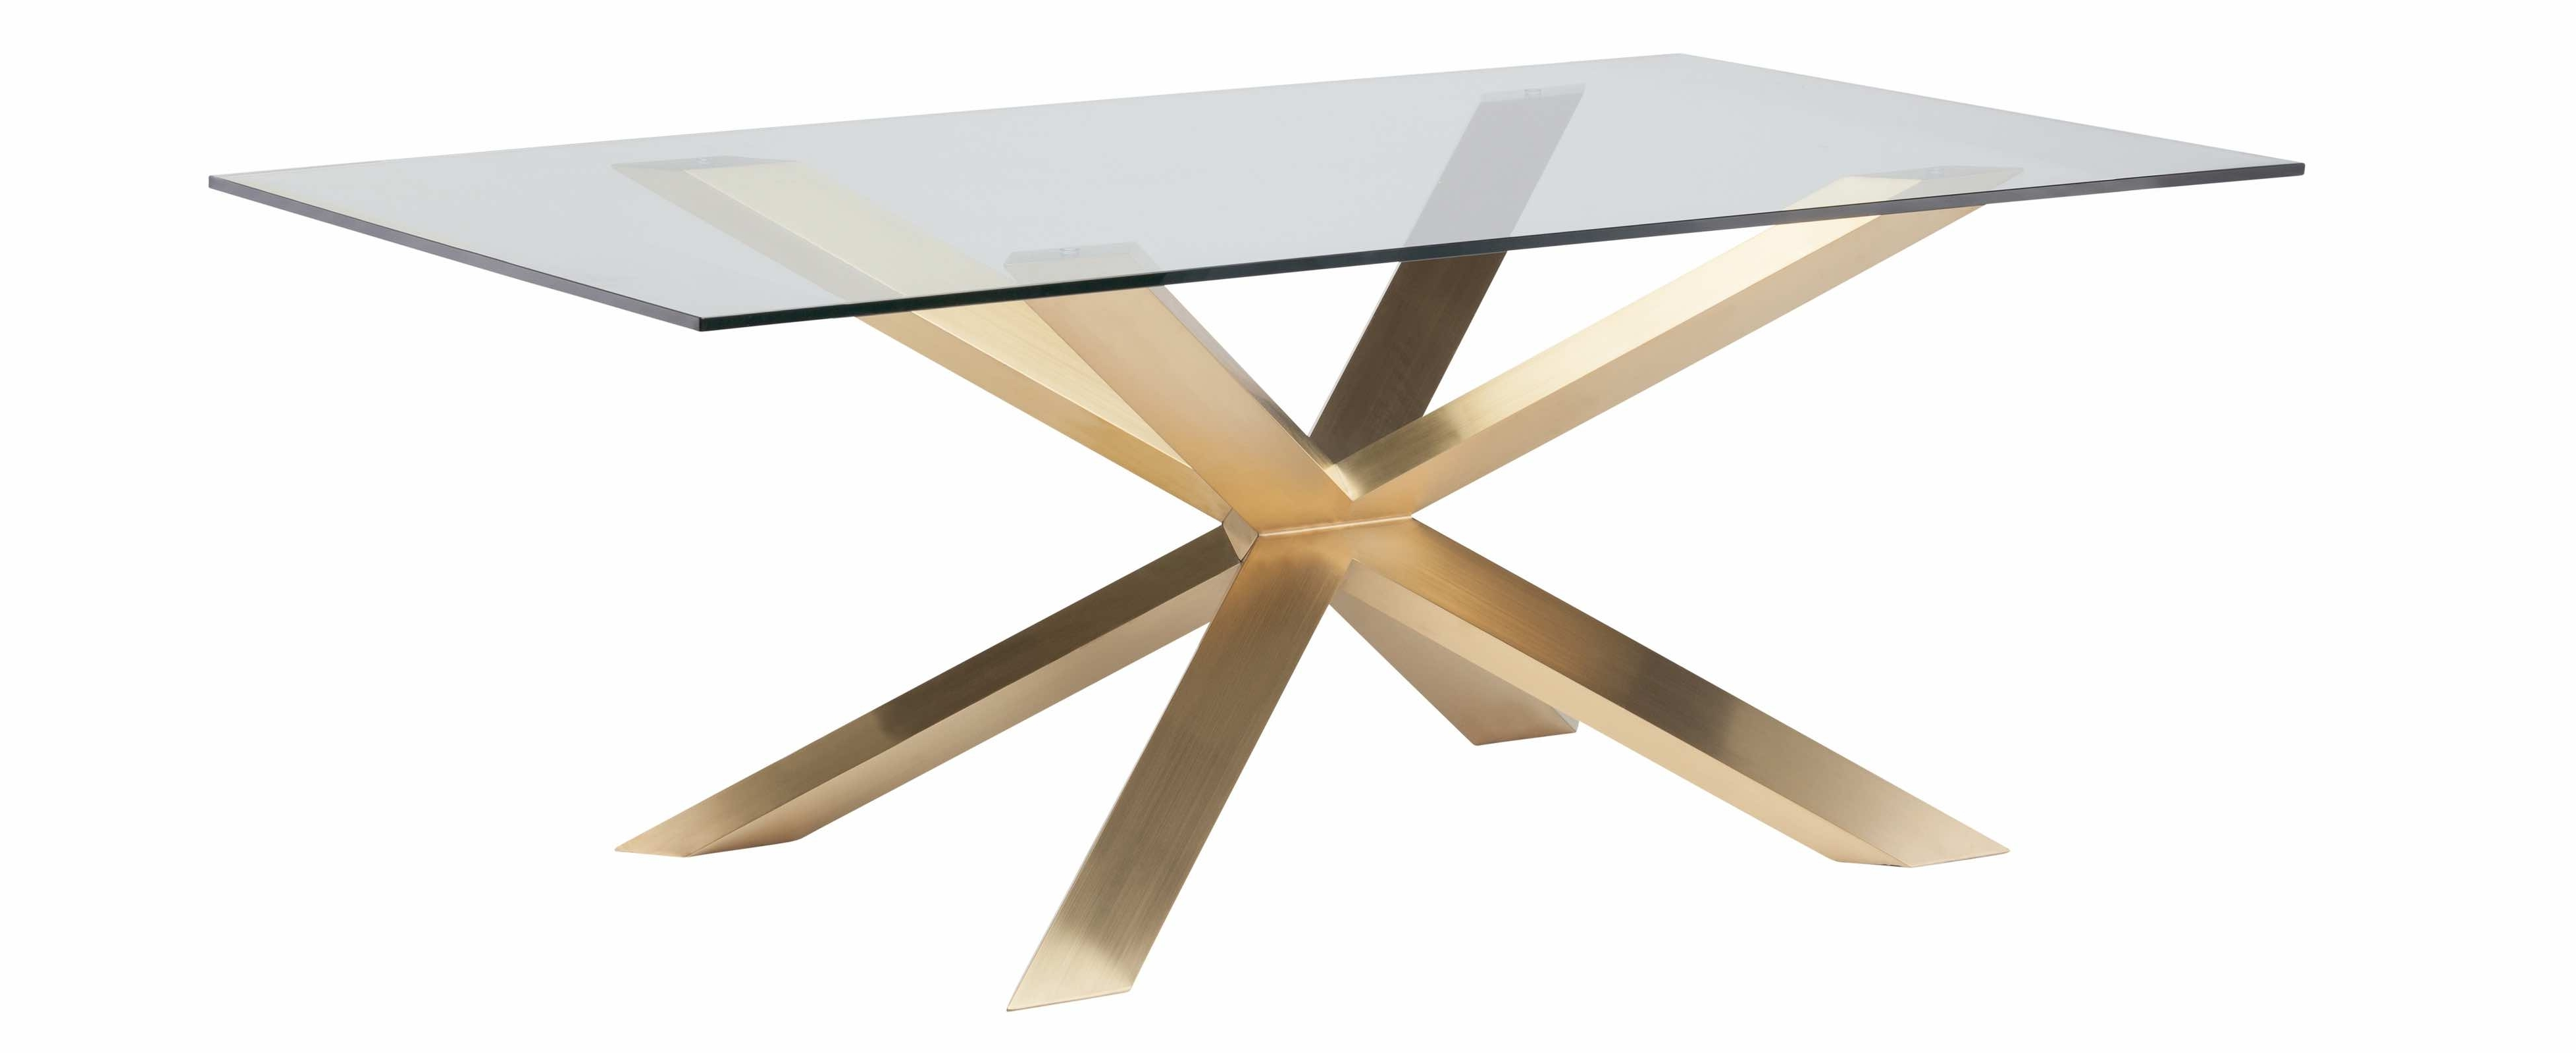 2018 Couture 78 Inch Dining Table In Brushed Gold Stainless Steel And Glass Intended For Brushed Metal Dining Tables (Gallery 22 of 25)